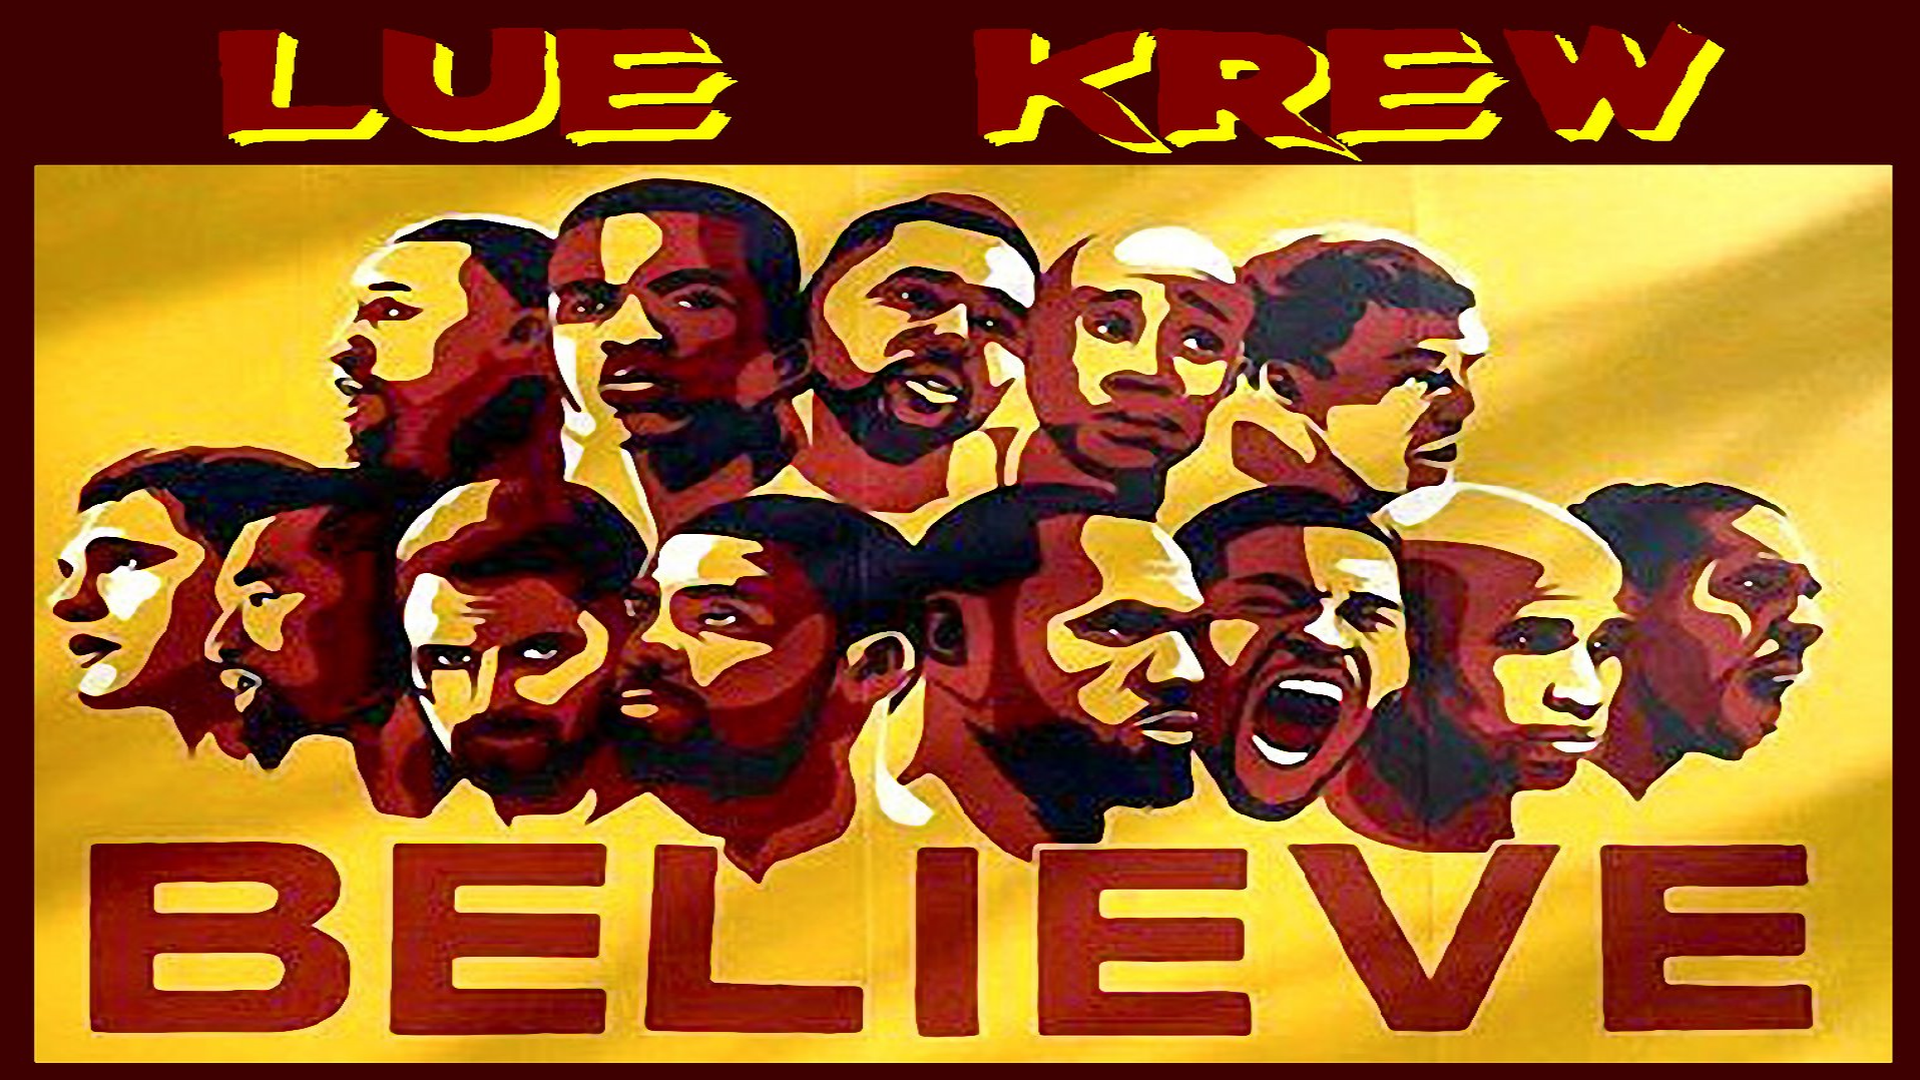 Cleveland Wallpaper 2017 >> Cleveland Cavaliers Images Lue Krew Hd Wallpaper And Background